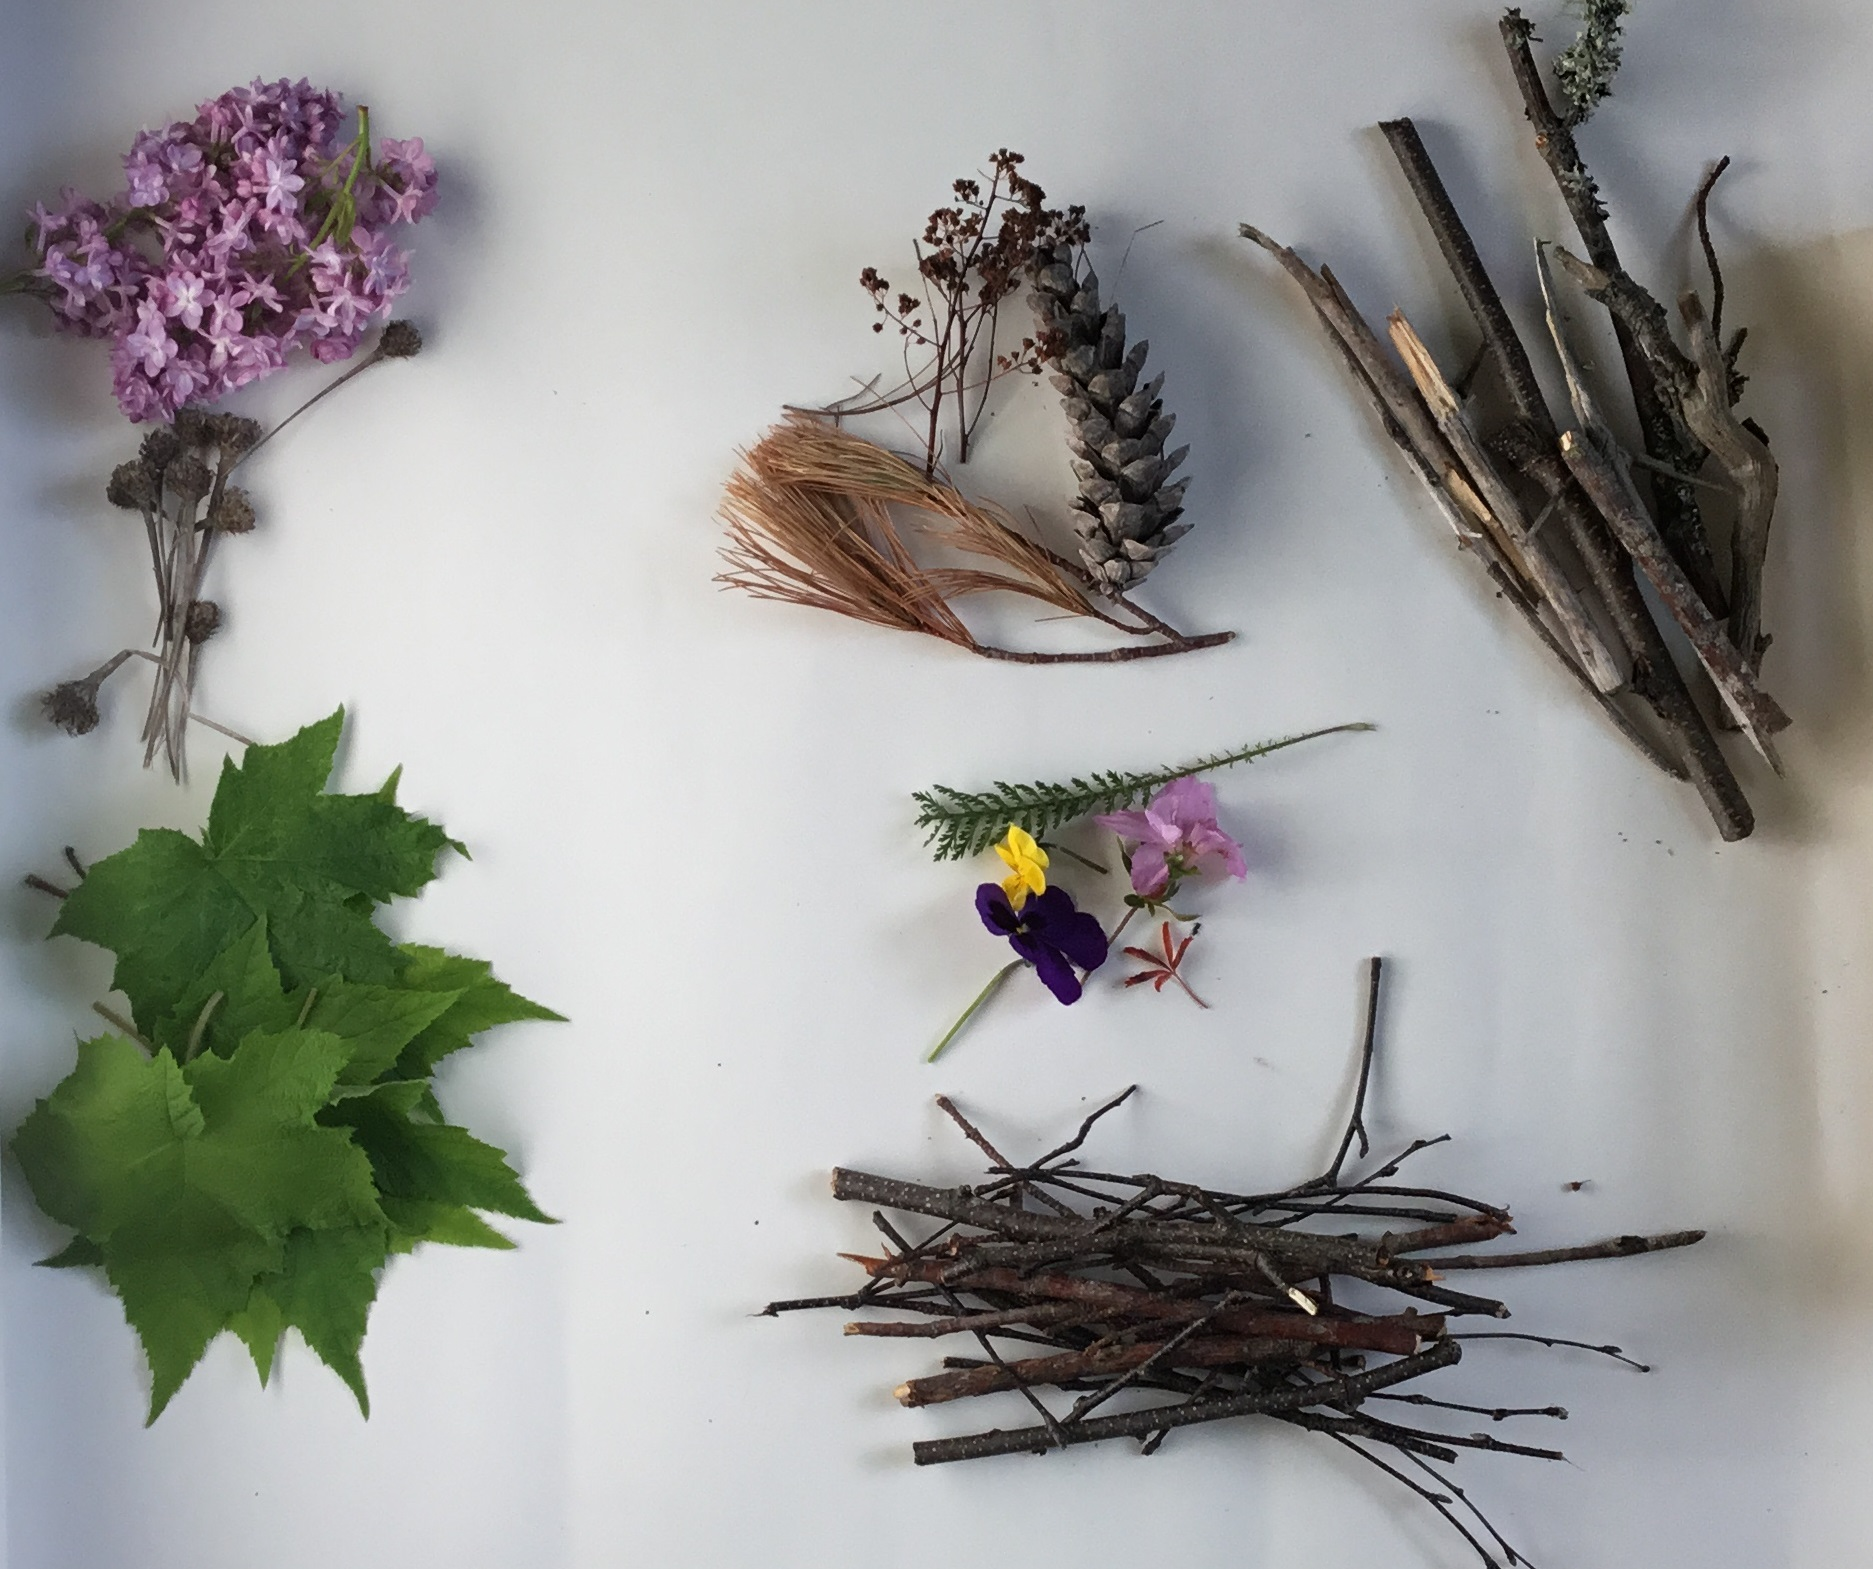 flowers, leaves, and sticks